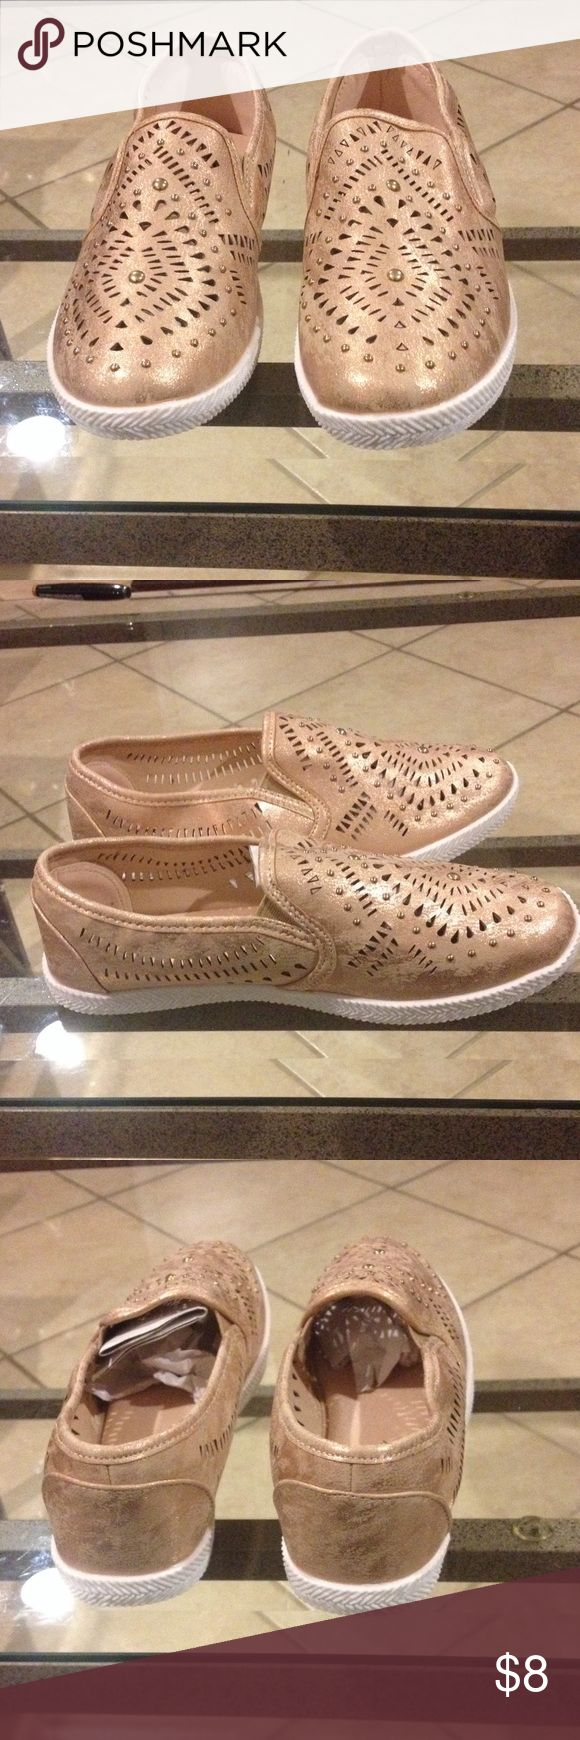 Size 6 Cushion Walk memory foam sneaker NWT Size 6 Cushion walk memory foam laser cut sneaker new with tags rose/gold Cushion Walk Shoes Sneakers